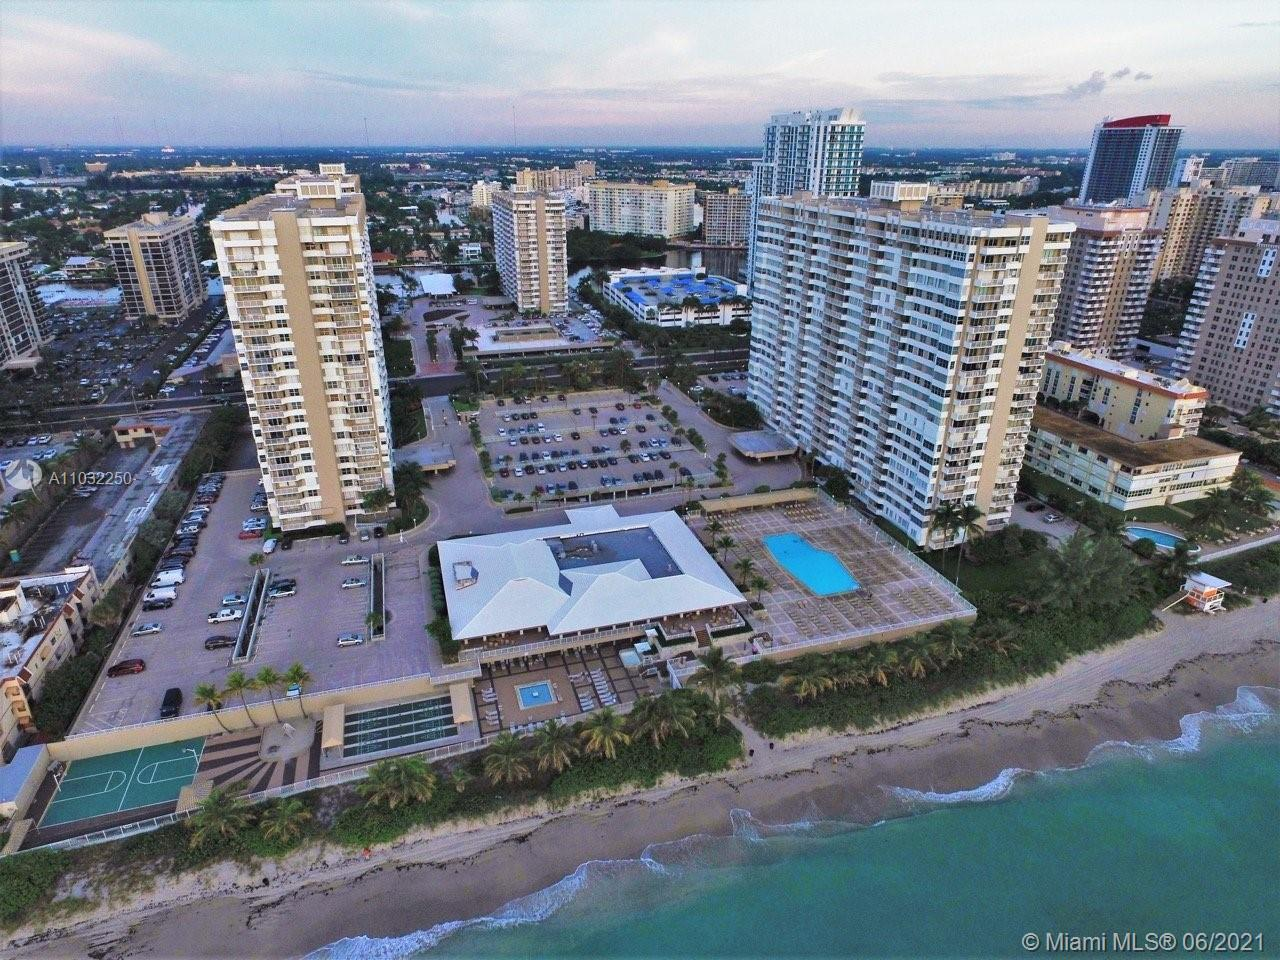 BEAUTIFUL CONDO DIRECTLY ON THE OCEAN, FULLY RENOVATED, AMAZING VIEWS. COMPLEX HAS 2 GYMS, 2 POOLS,